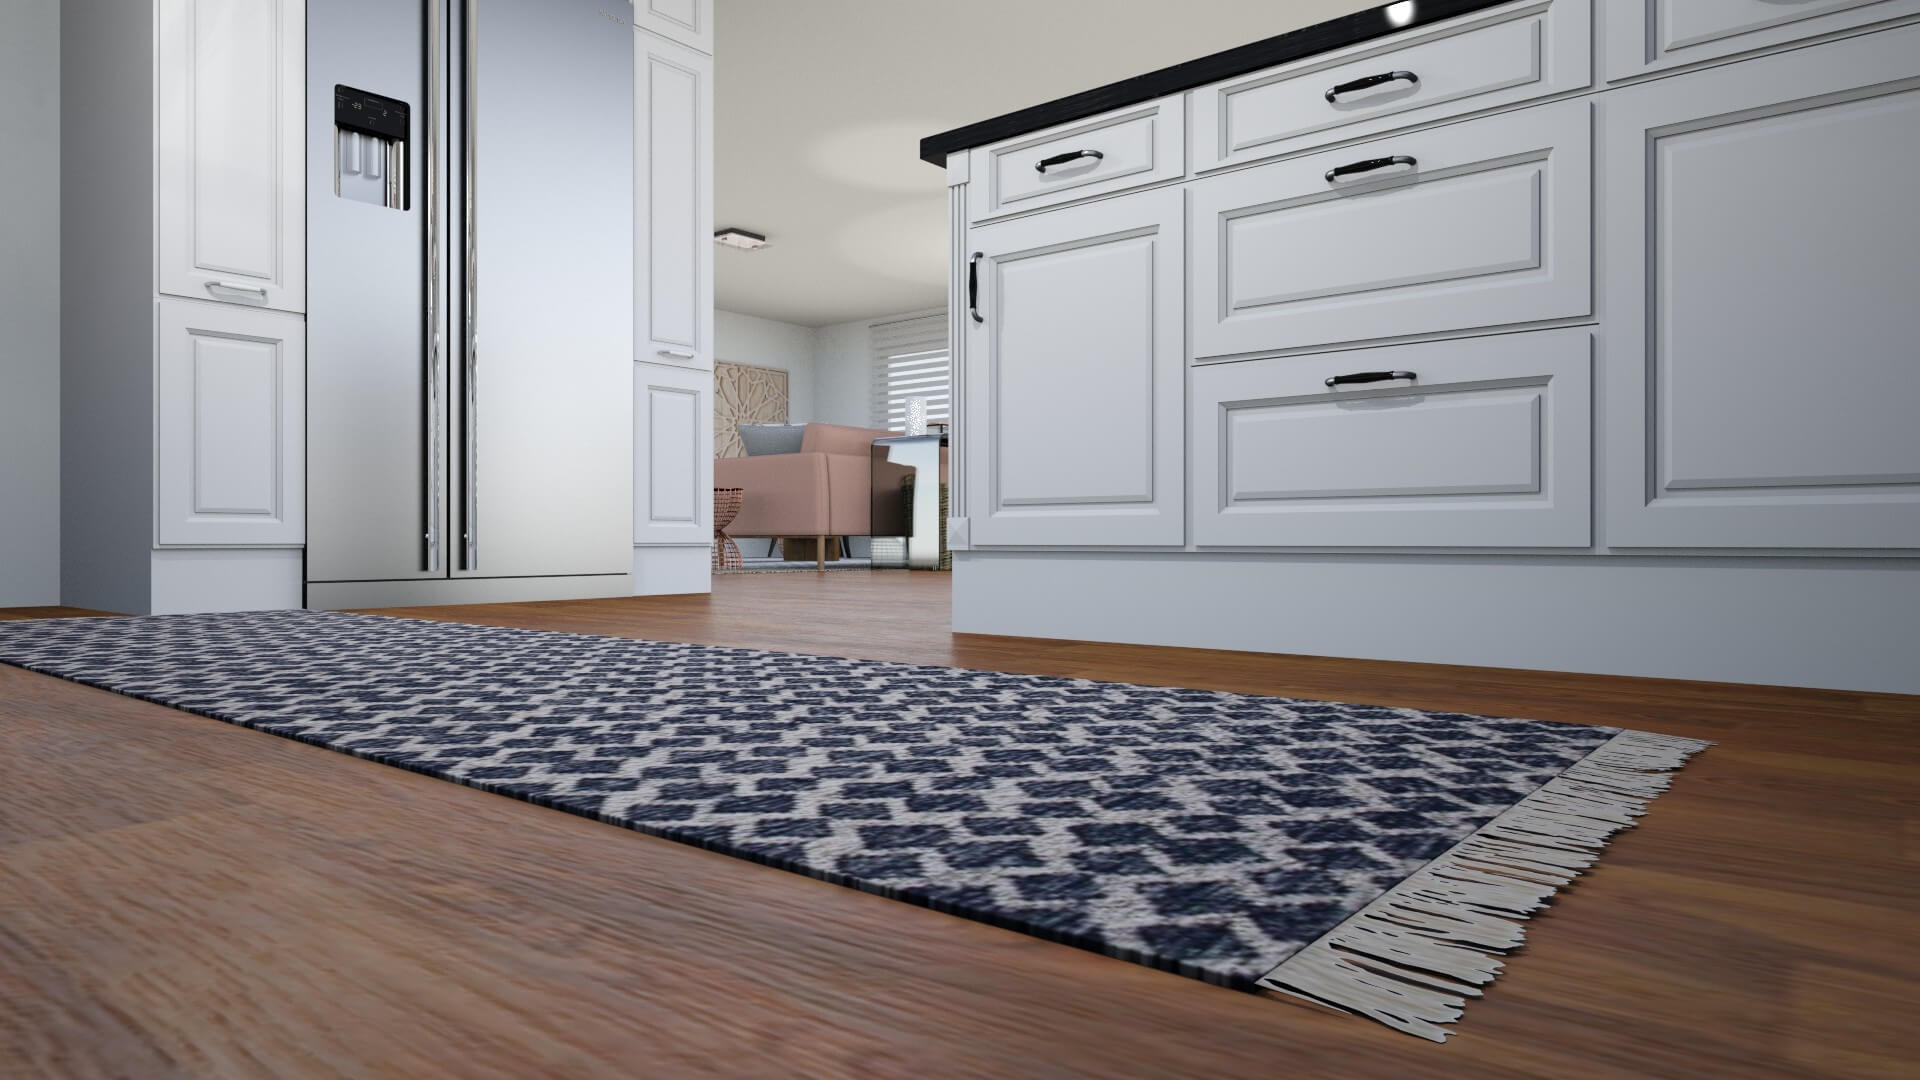 Sassy Charm L.A. Apartment by Albie Knows - Kitchen Runner Detail.jpg